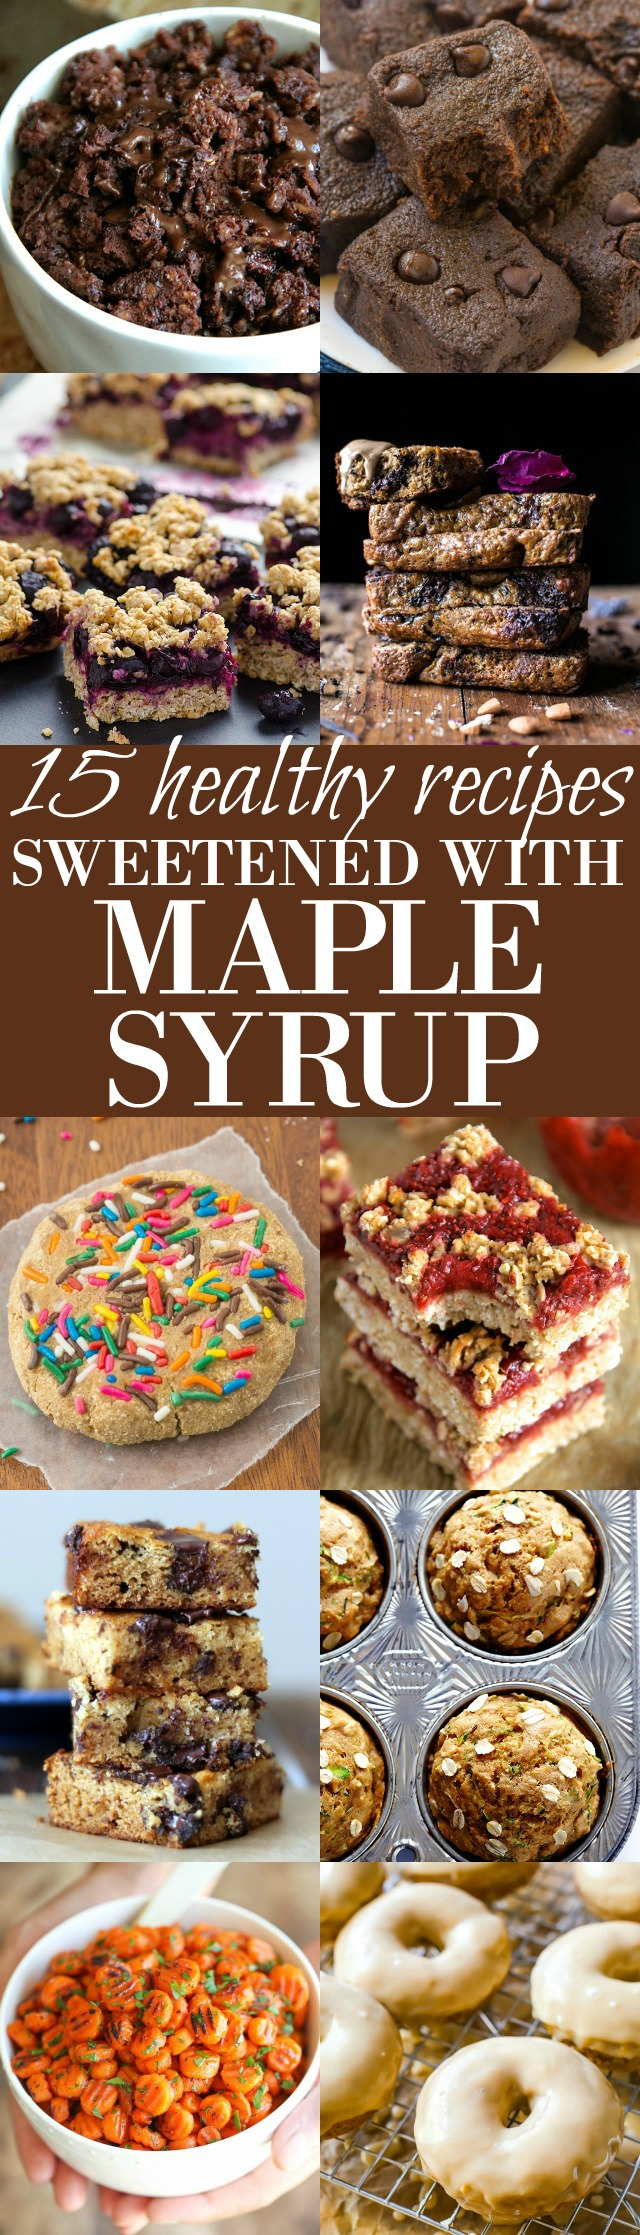 Looking to cut back on the refined sugars? These healthy maple syrup sweetened recipes will help you do just that without having to sacrifice your sweet tooth! | runningwithspoons.com